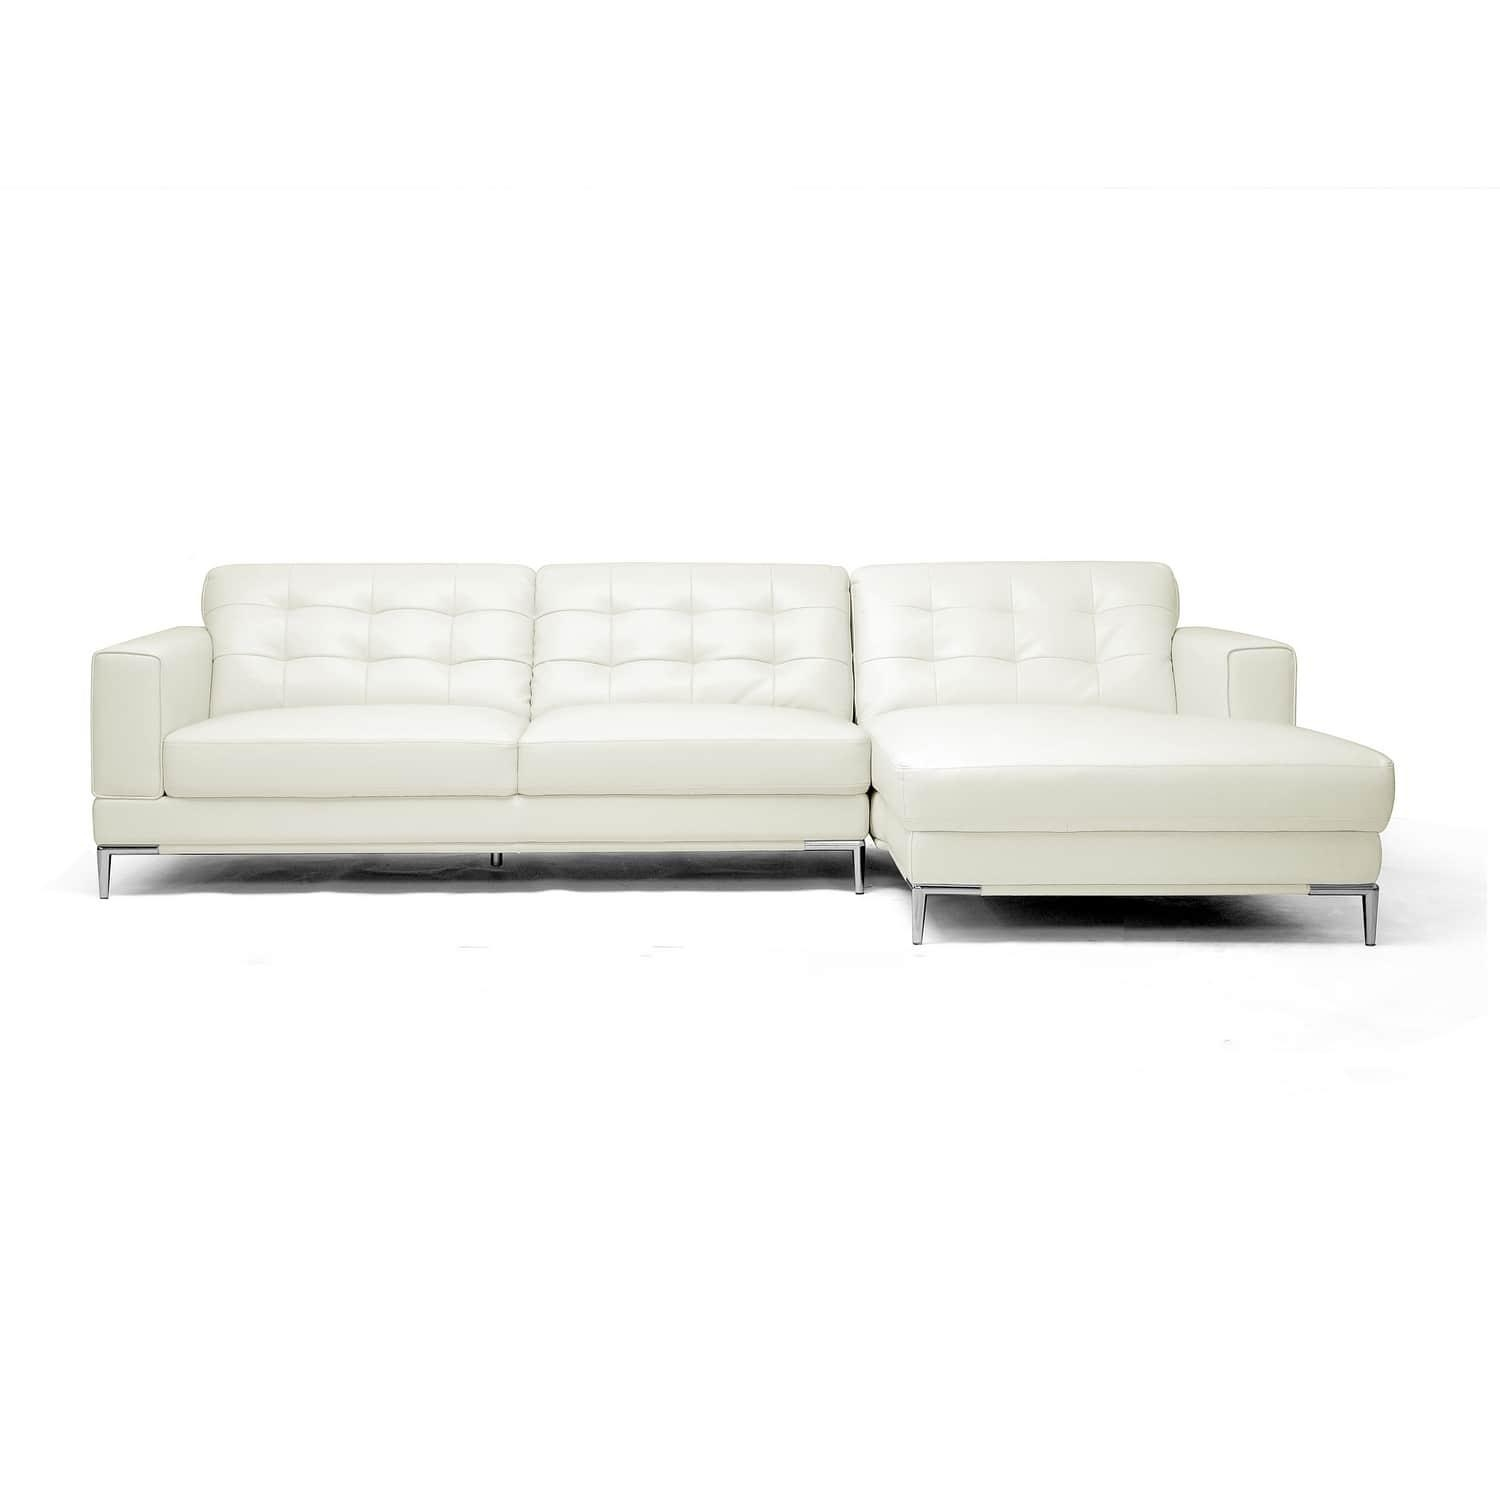 Babbitt Sleek Ivory Leather Modern Sectional Sofa – Free Shipping With Regard To Sleek Sectional Sofa (Image 2 of 20)